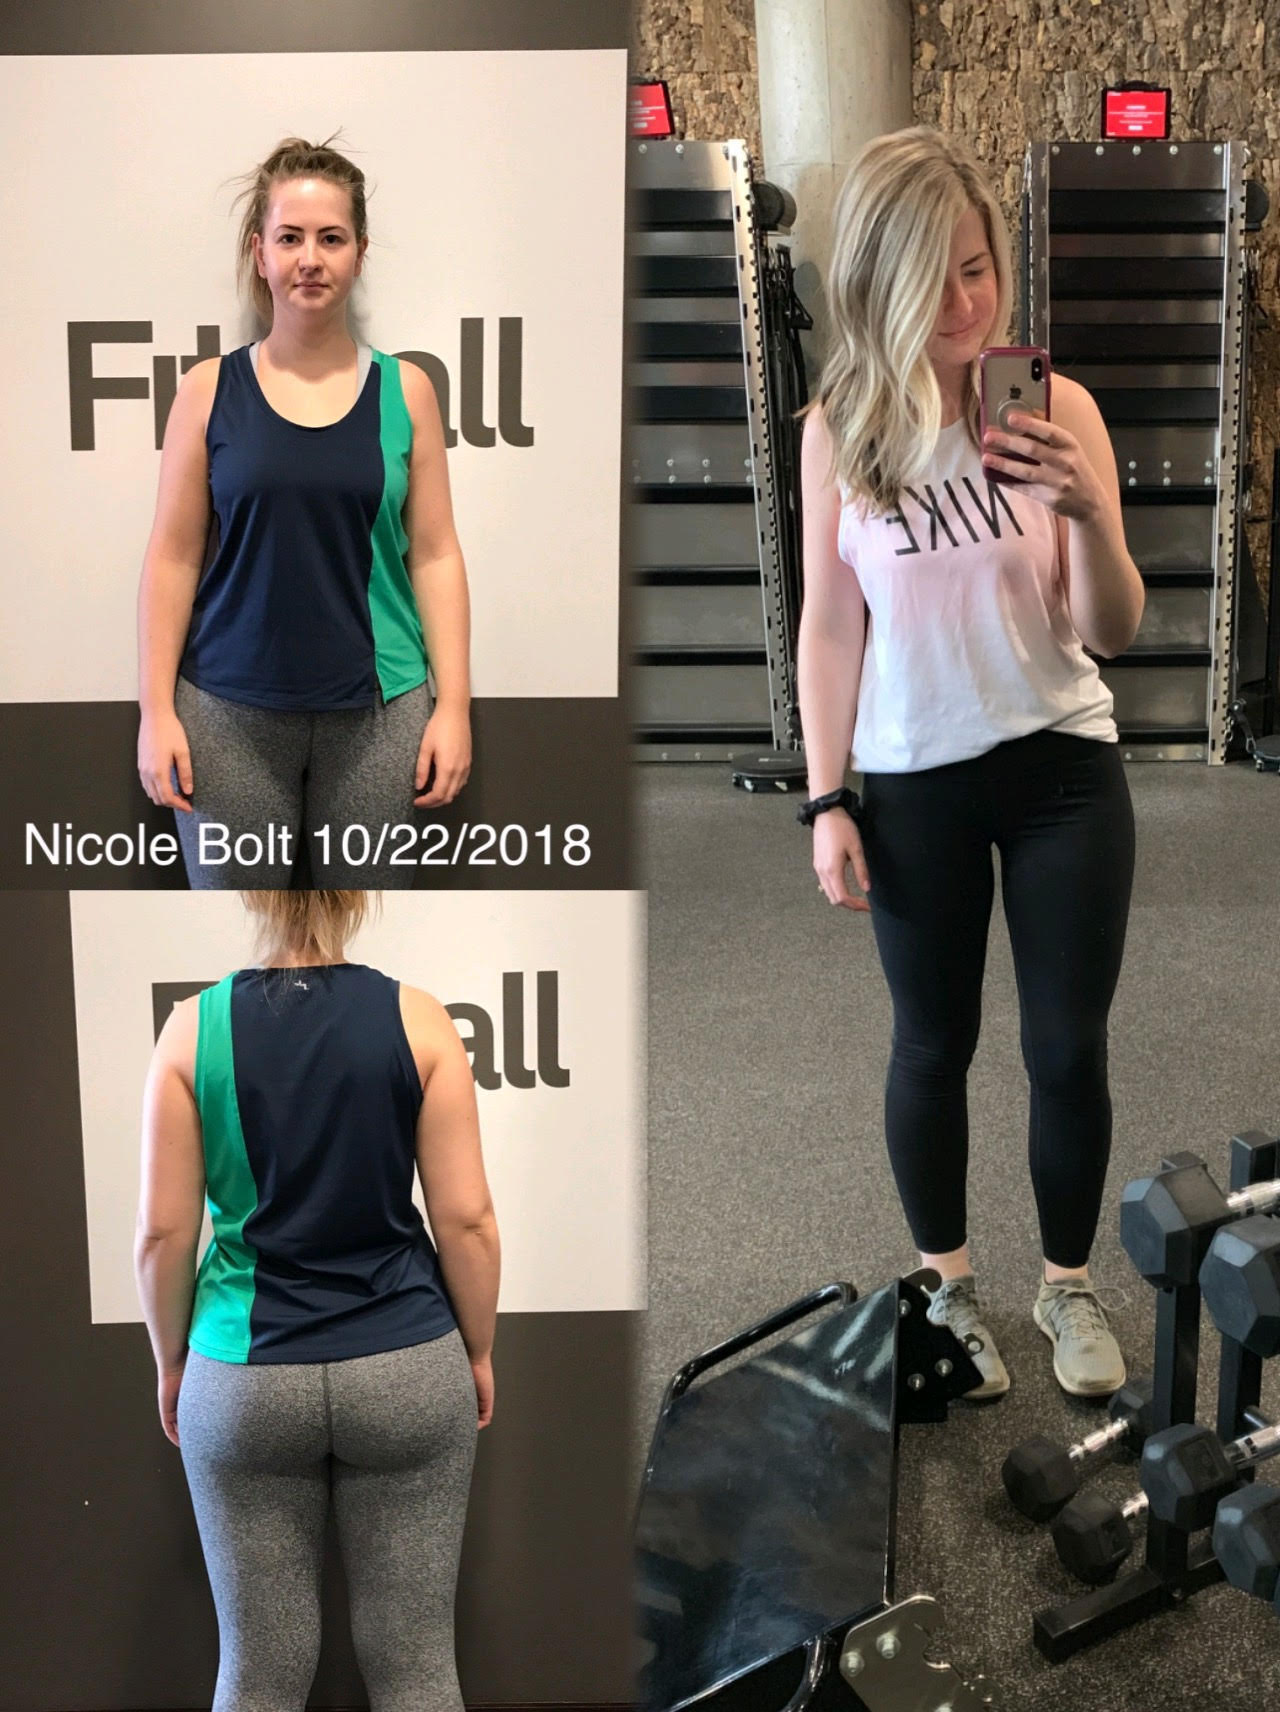 Nicole Bolt Weight Loss Journey2